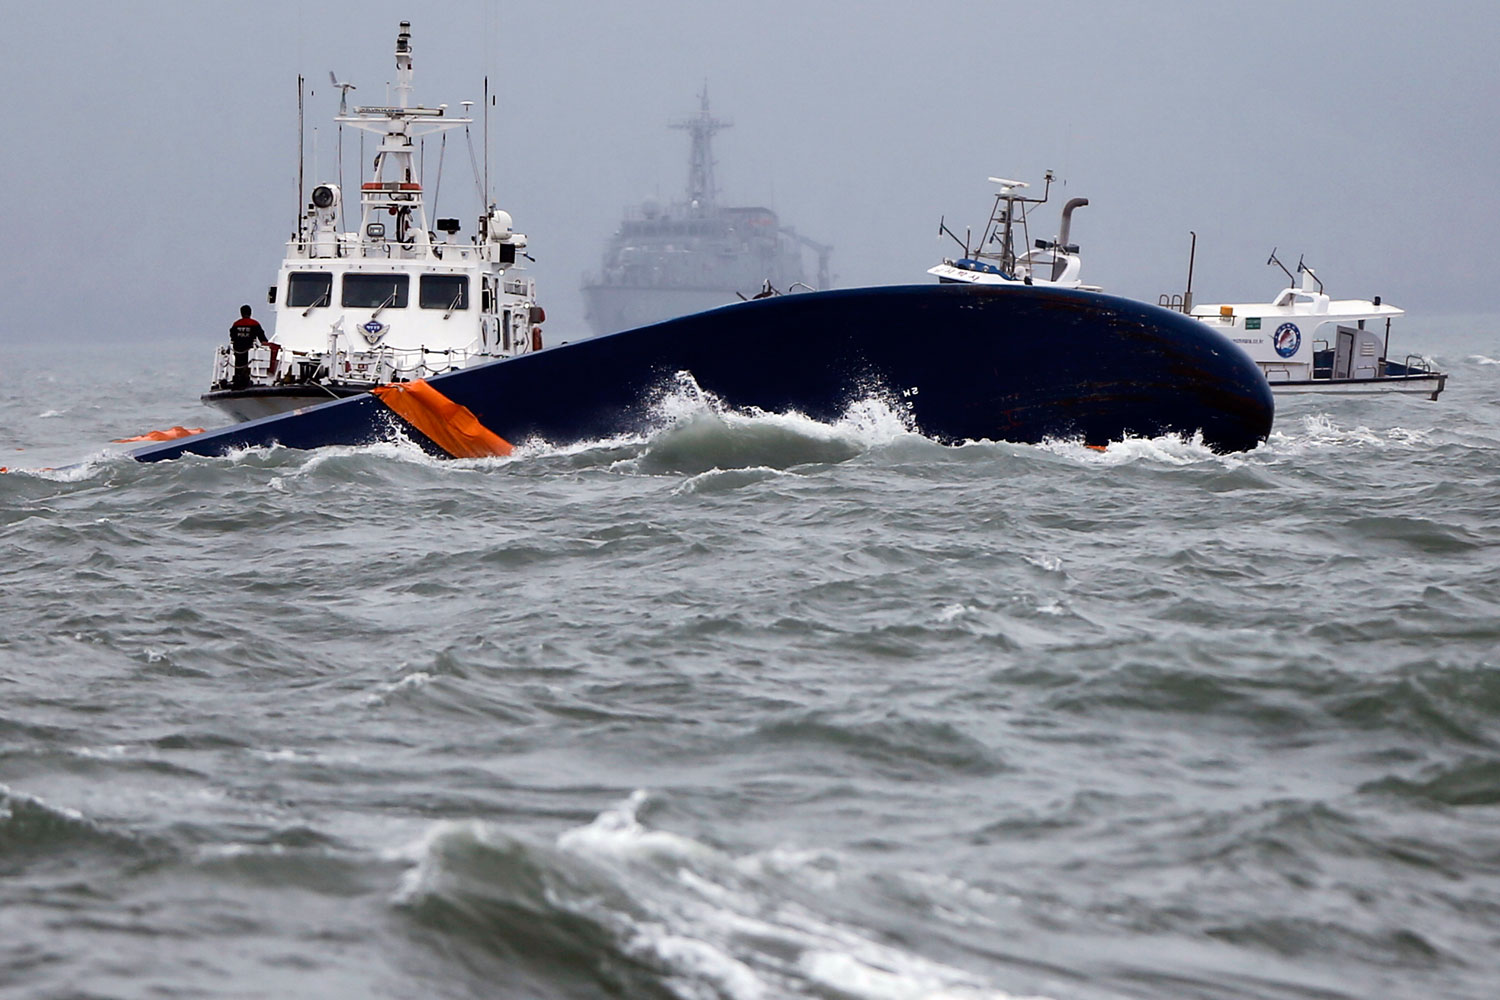 Vessels involved in salvage operations are seen near the upturned Sewol ferry in the sea off the South Korean town of Jindo on April 17, 2014